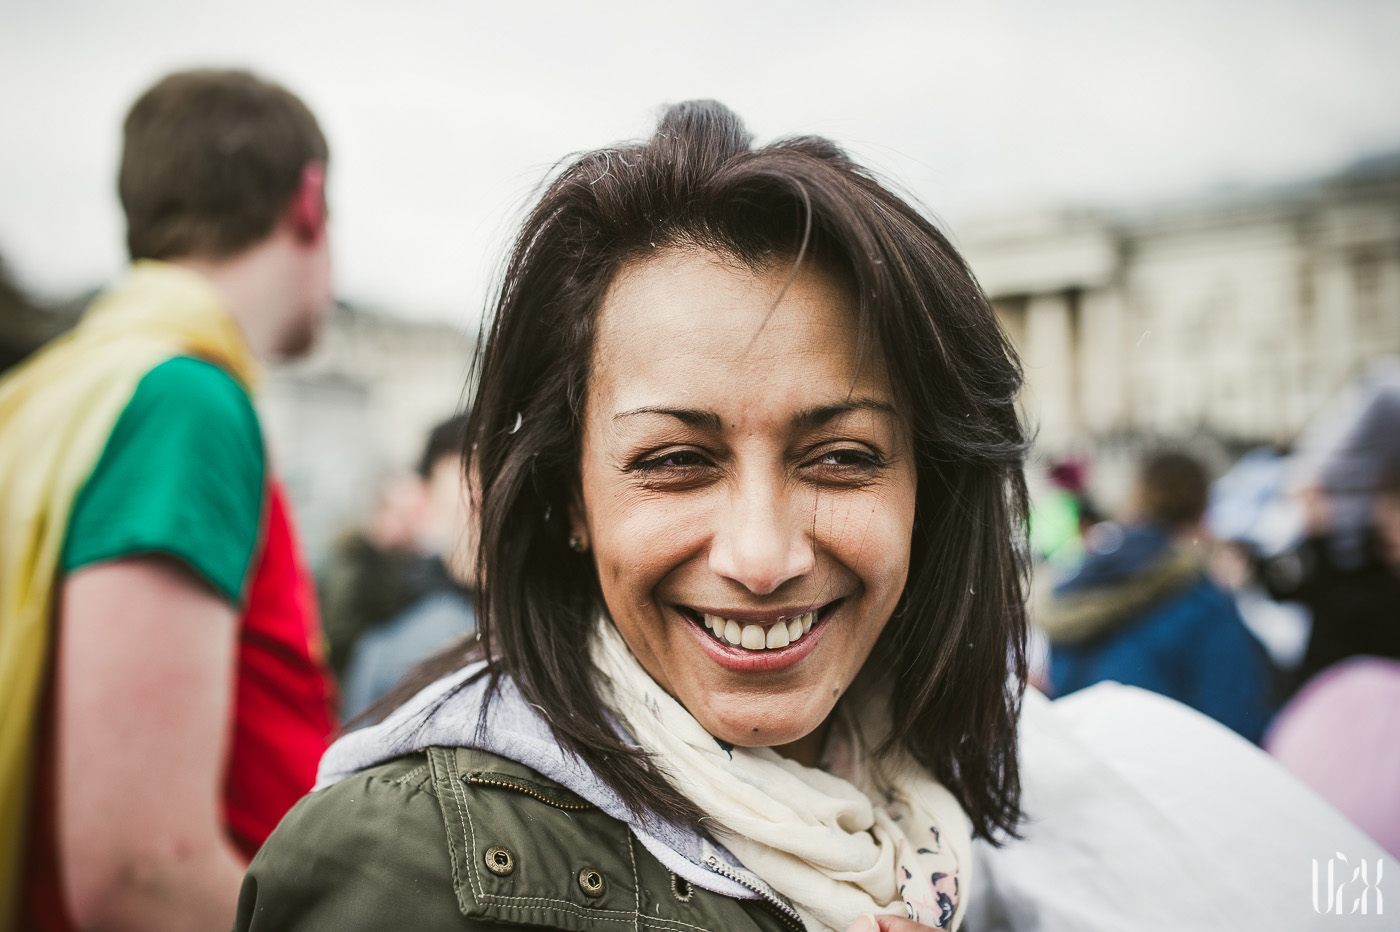 International Pillow Fight Day In London 2015 Street Photography Pagalviu Musis 19